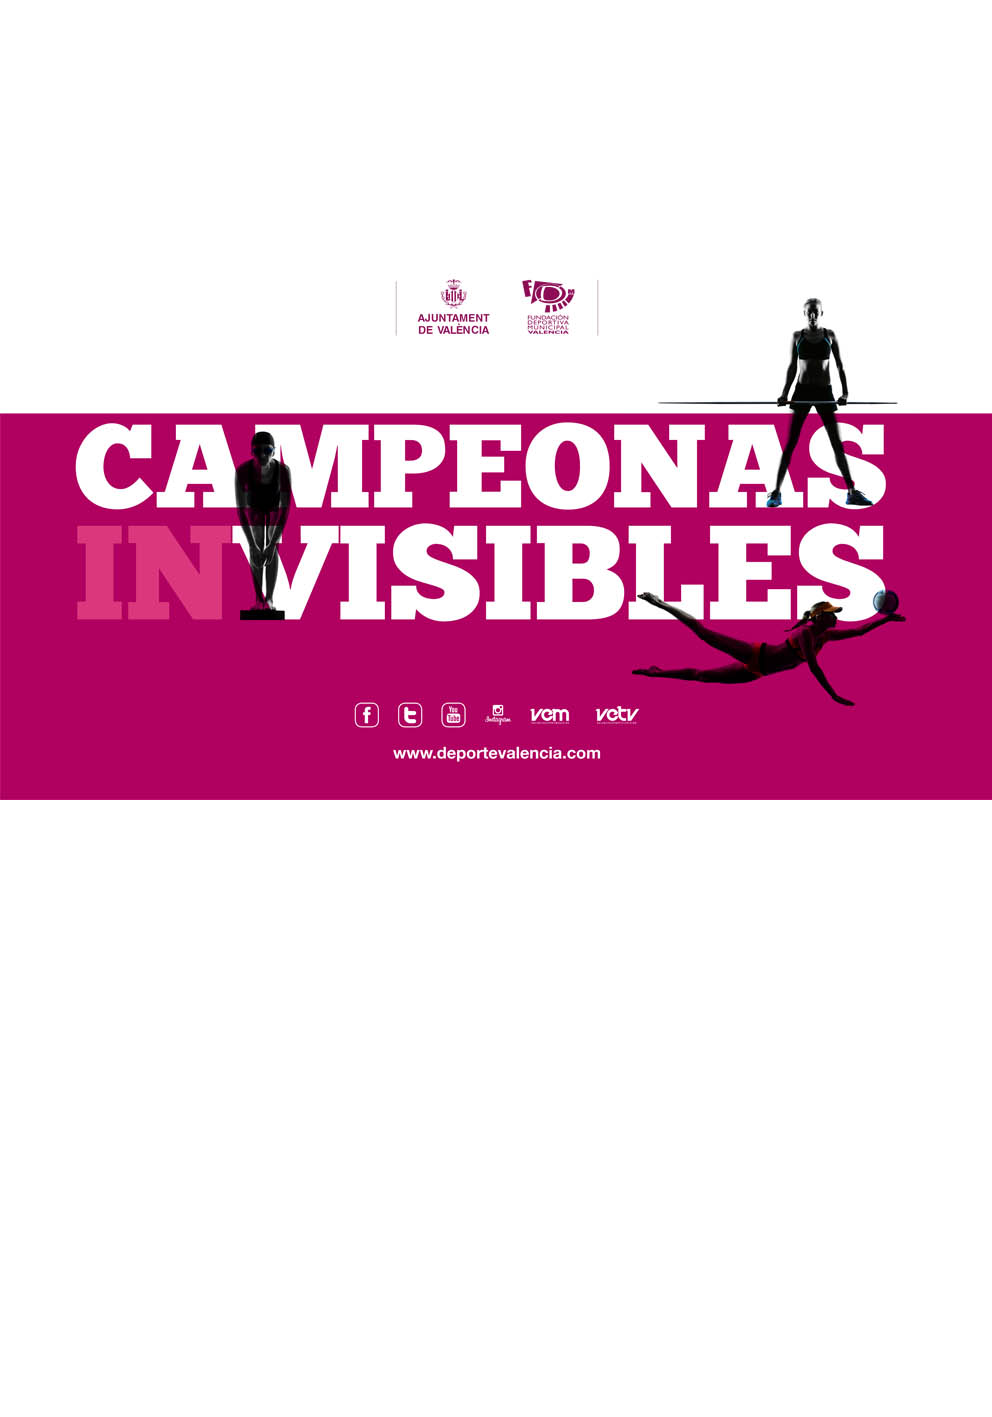 mencion_cd_campeonas-invisibles